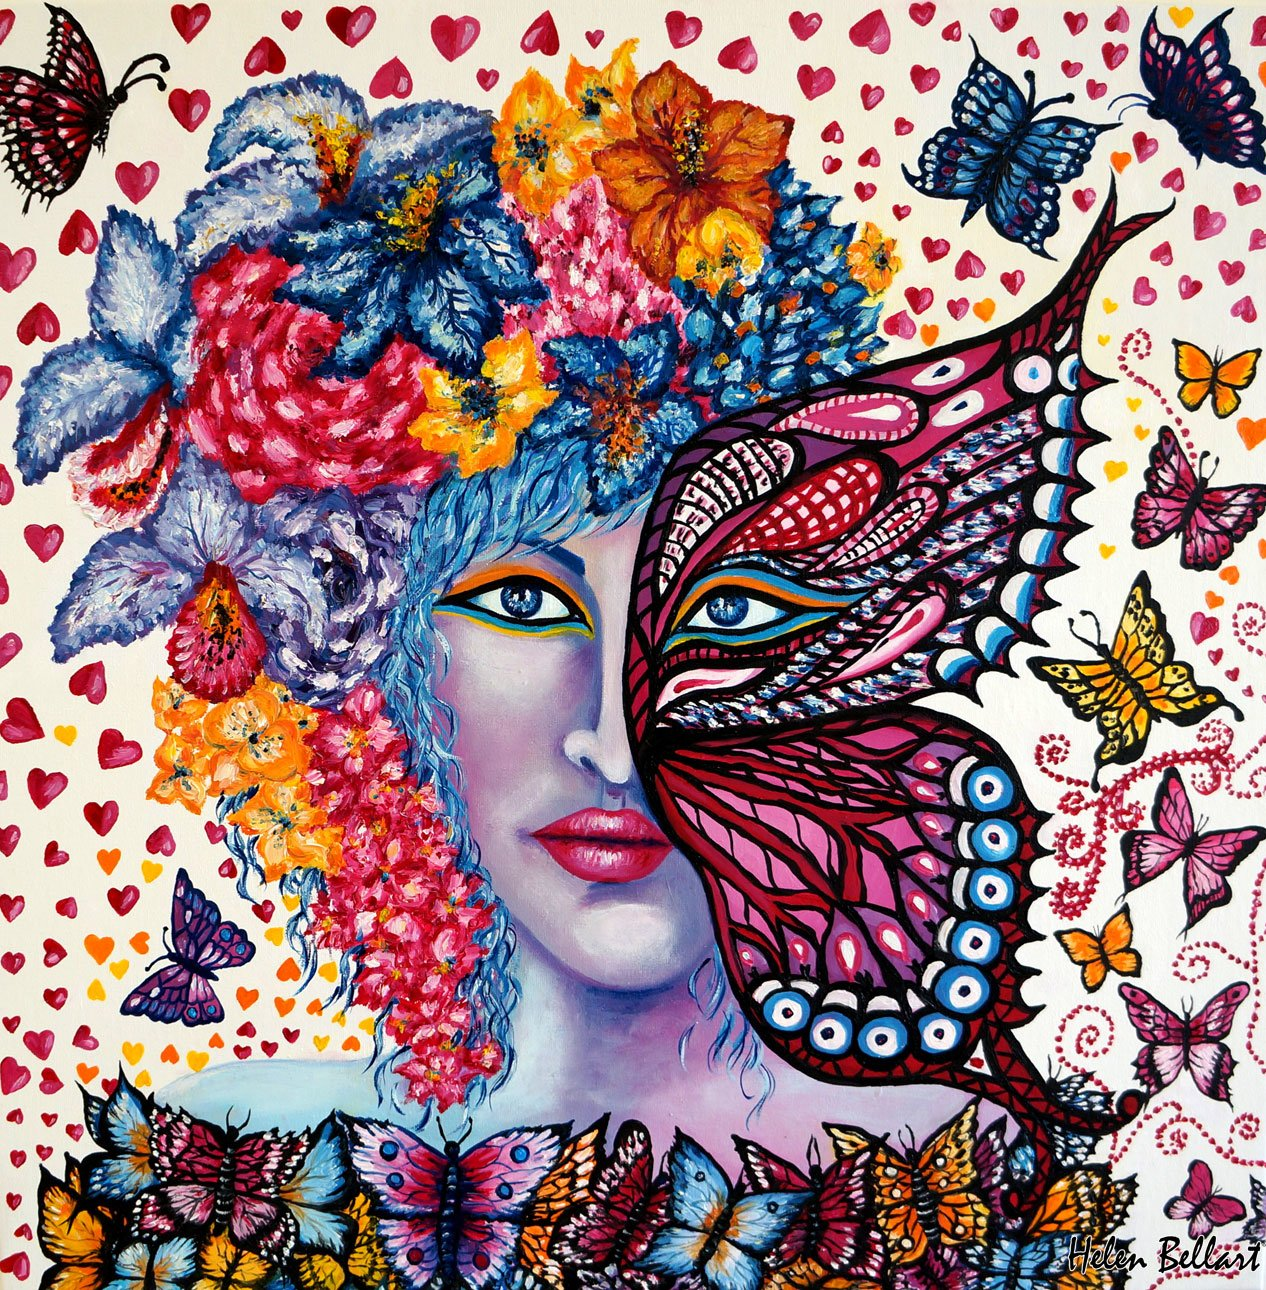 Helen Bellart; Fall In Love, 2017, Original Painting Oil, 50 x 50 cm. Artwork description: 241 Fall in love, oil on canvas, 50x50cm, My new artwork reflects a woman who fall in love and has butterflies in her stomach and a fantastic feeling in the heart. DonA't find love, let love find you ThatA's why is called falling in love because ...